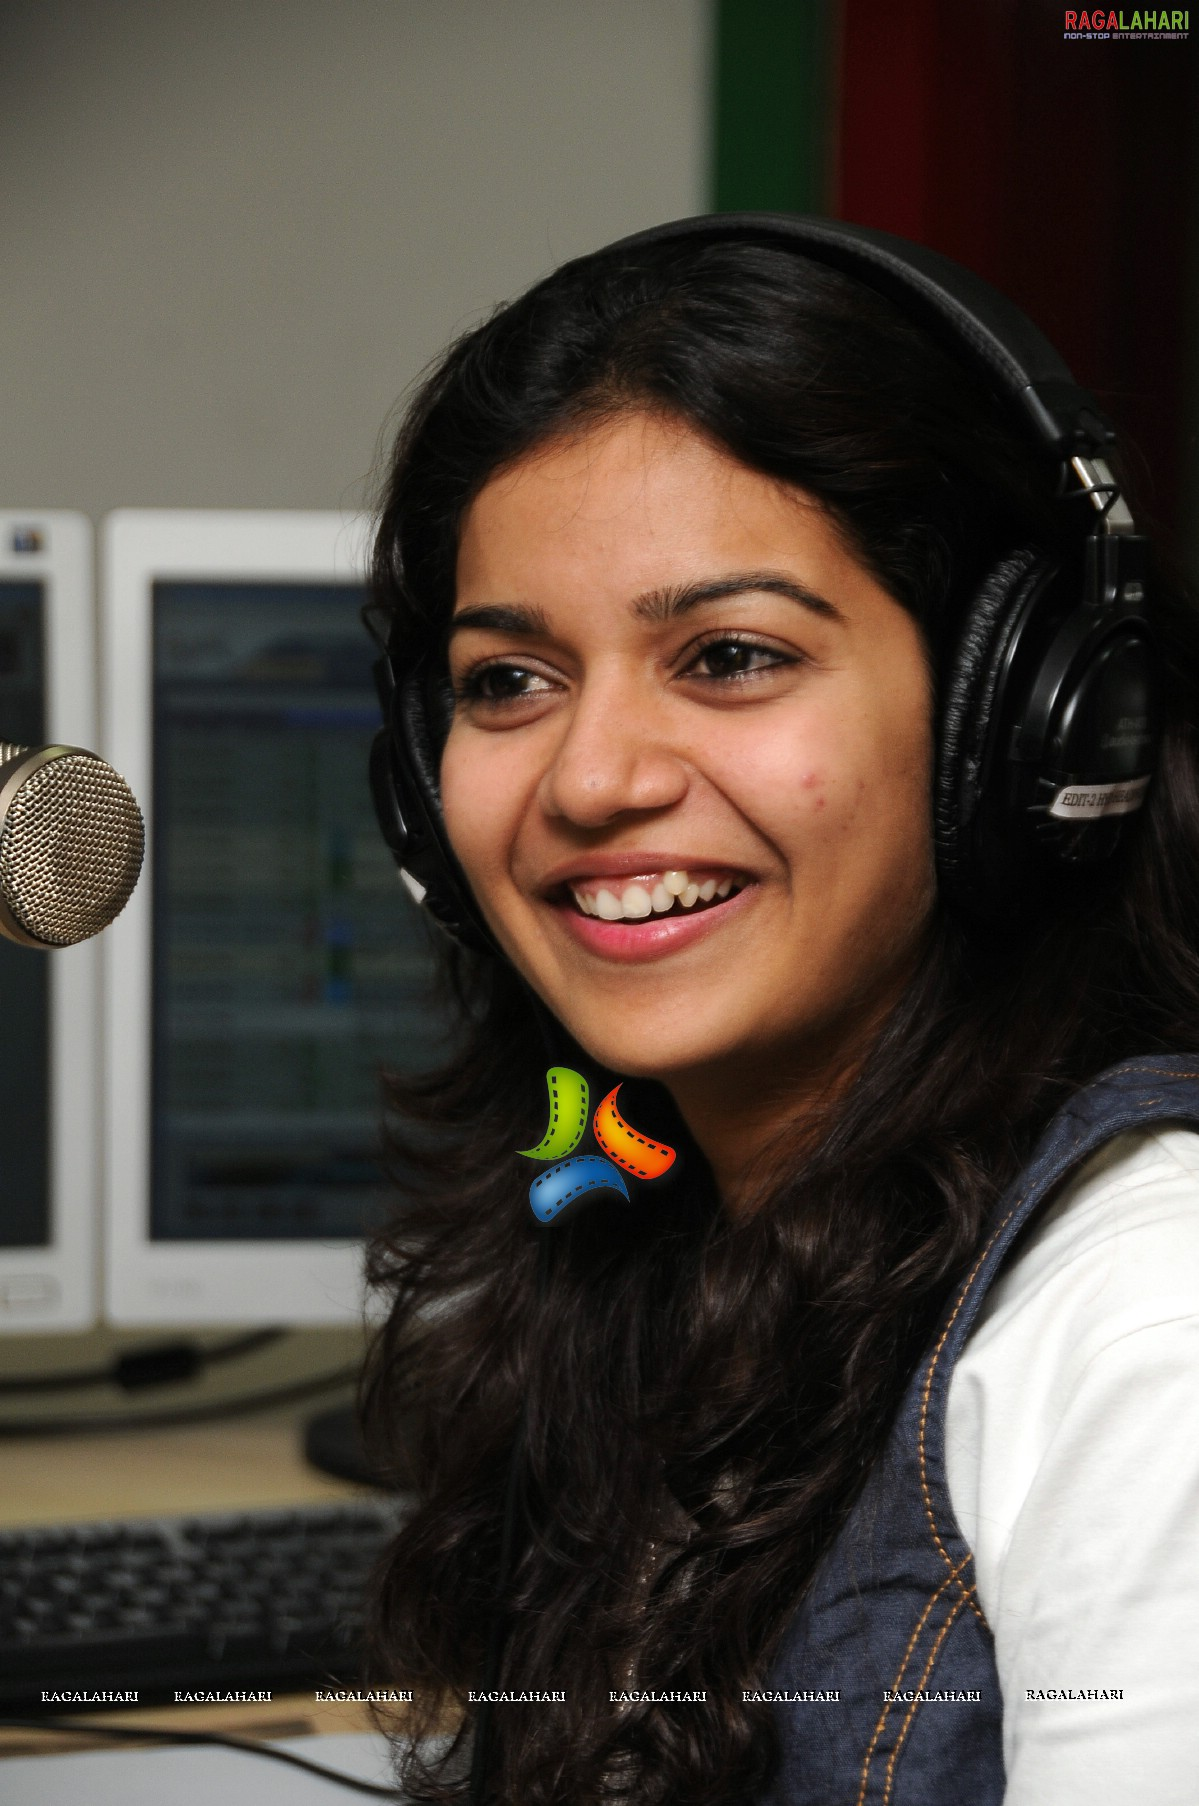 Marriage news is trash Colours Swathi Marriage rumours .